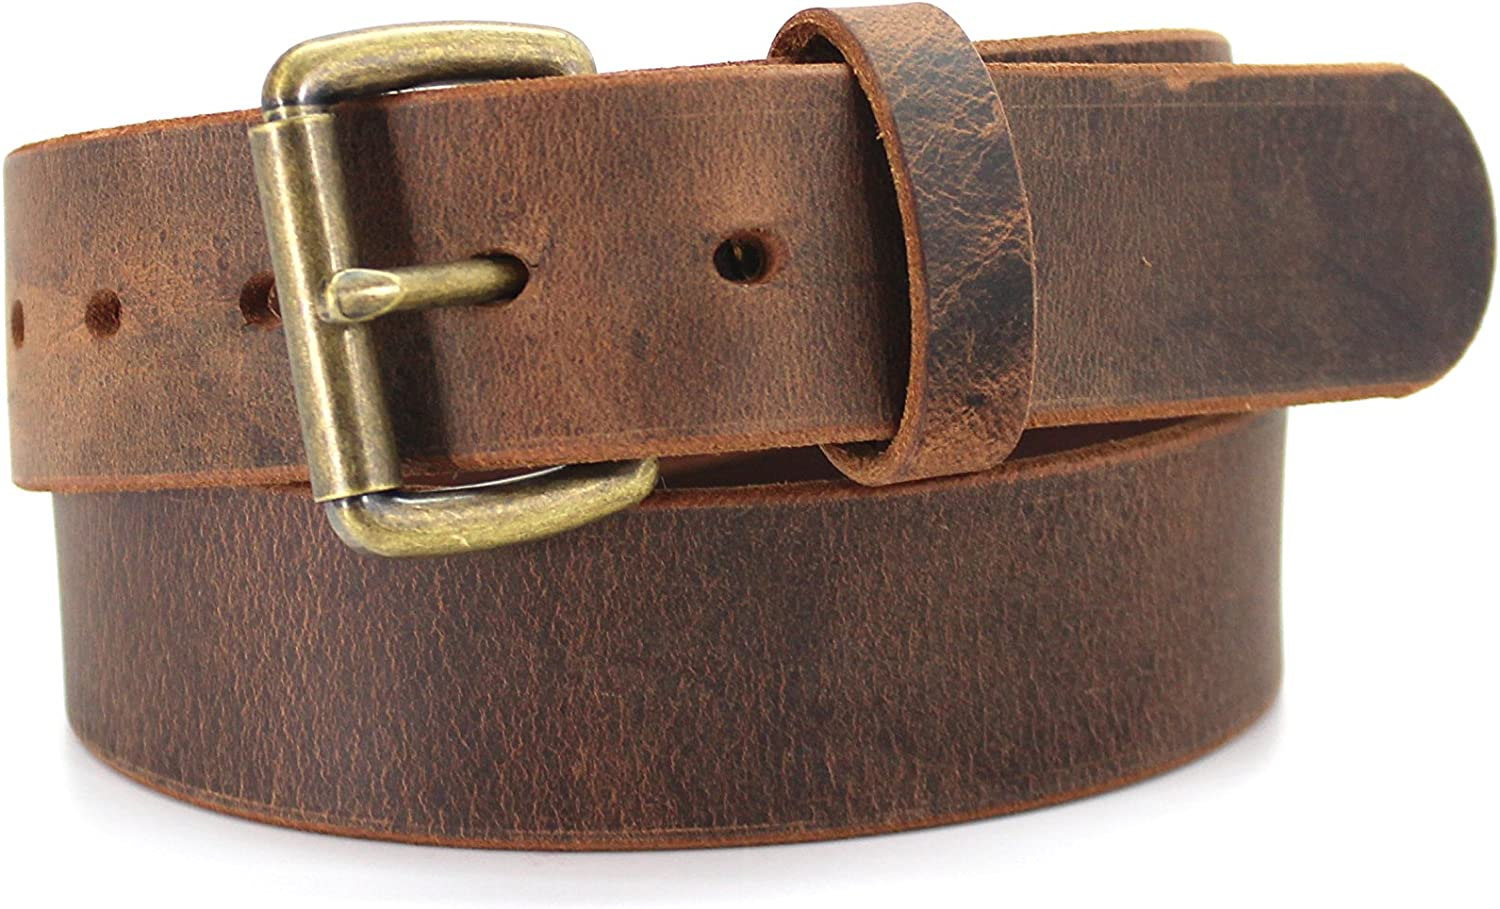 Daltech Force Brown Distressed Max 46% OFF American Smooth All stores are sold - Casual Bison Be